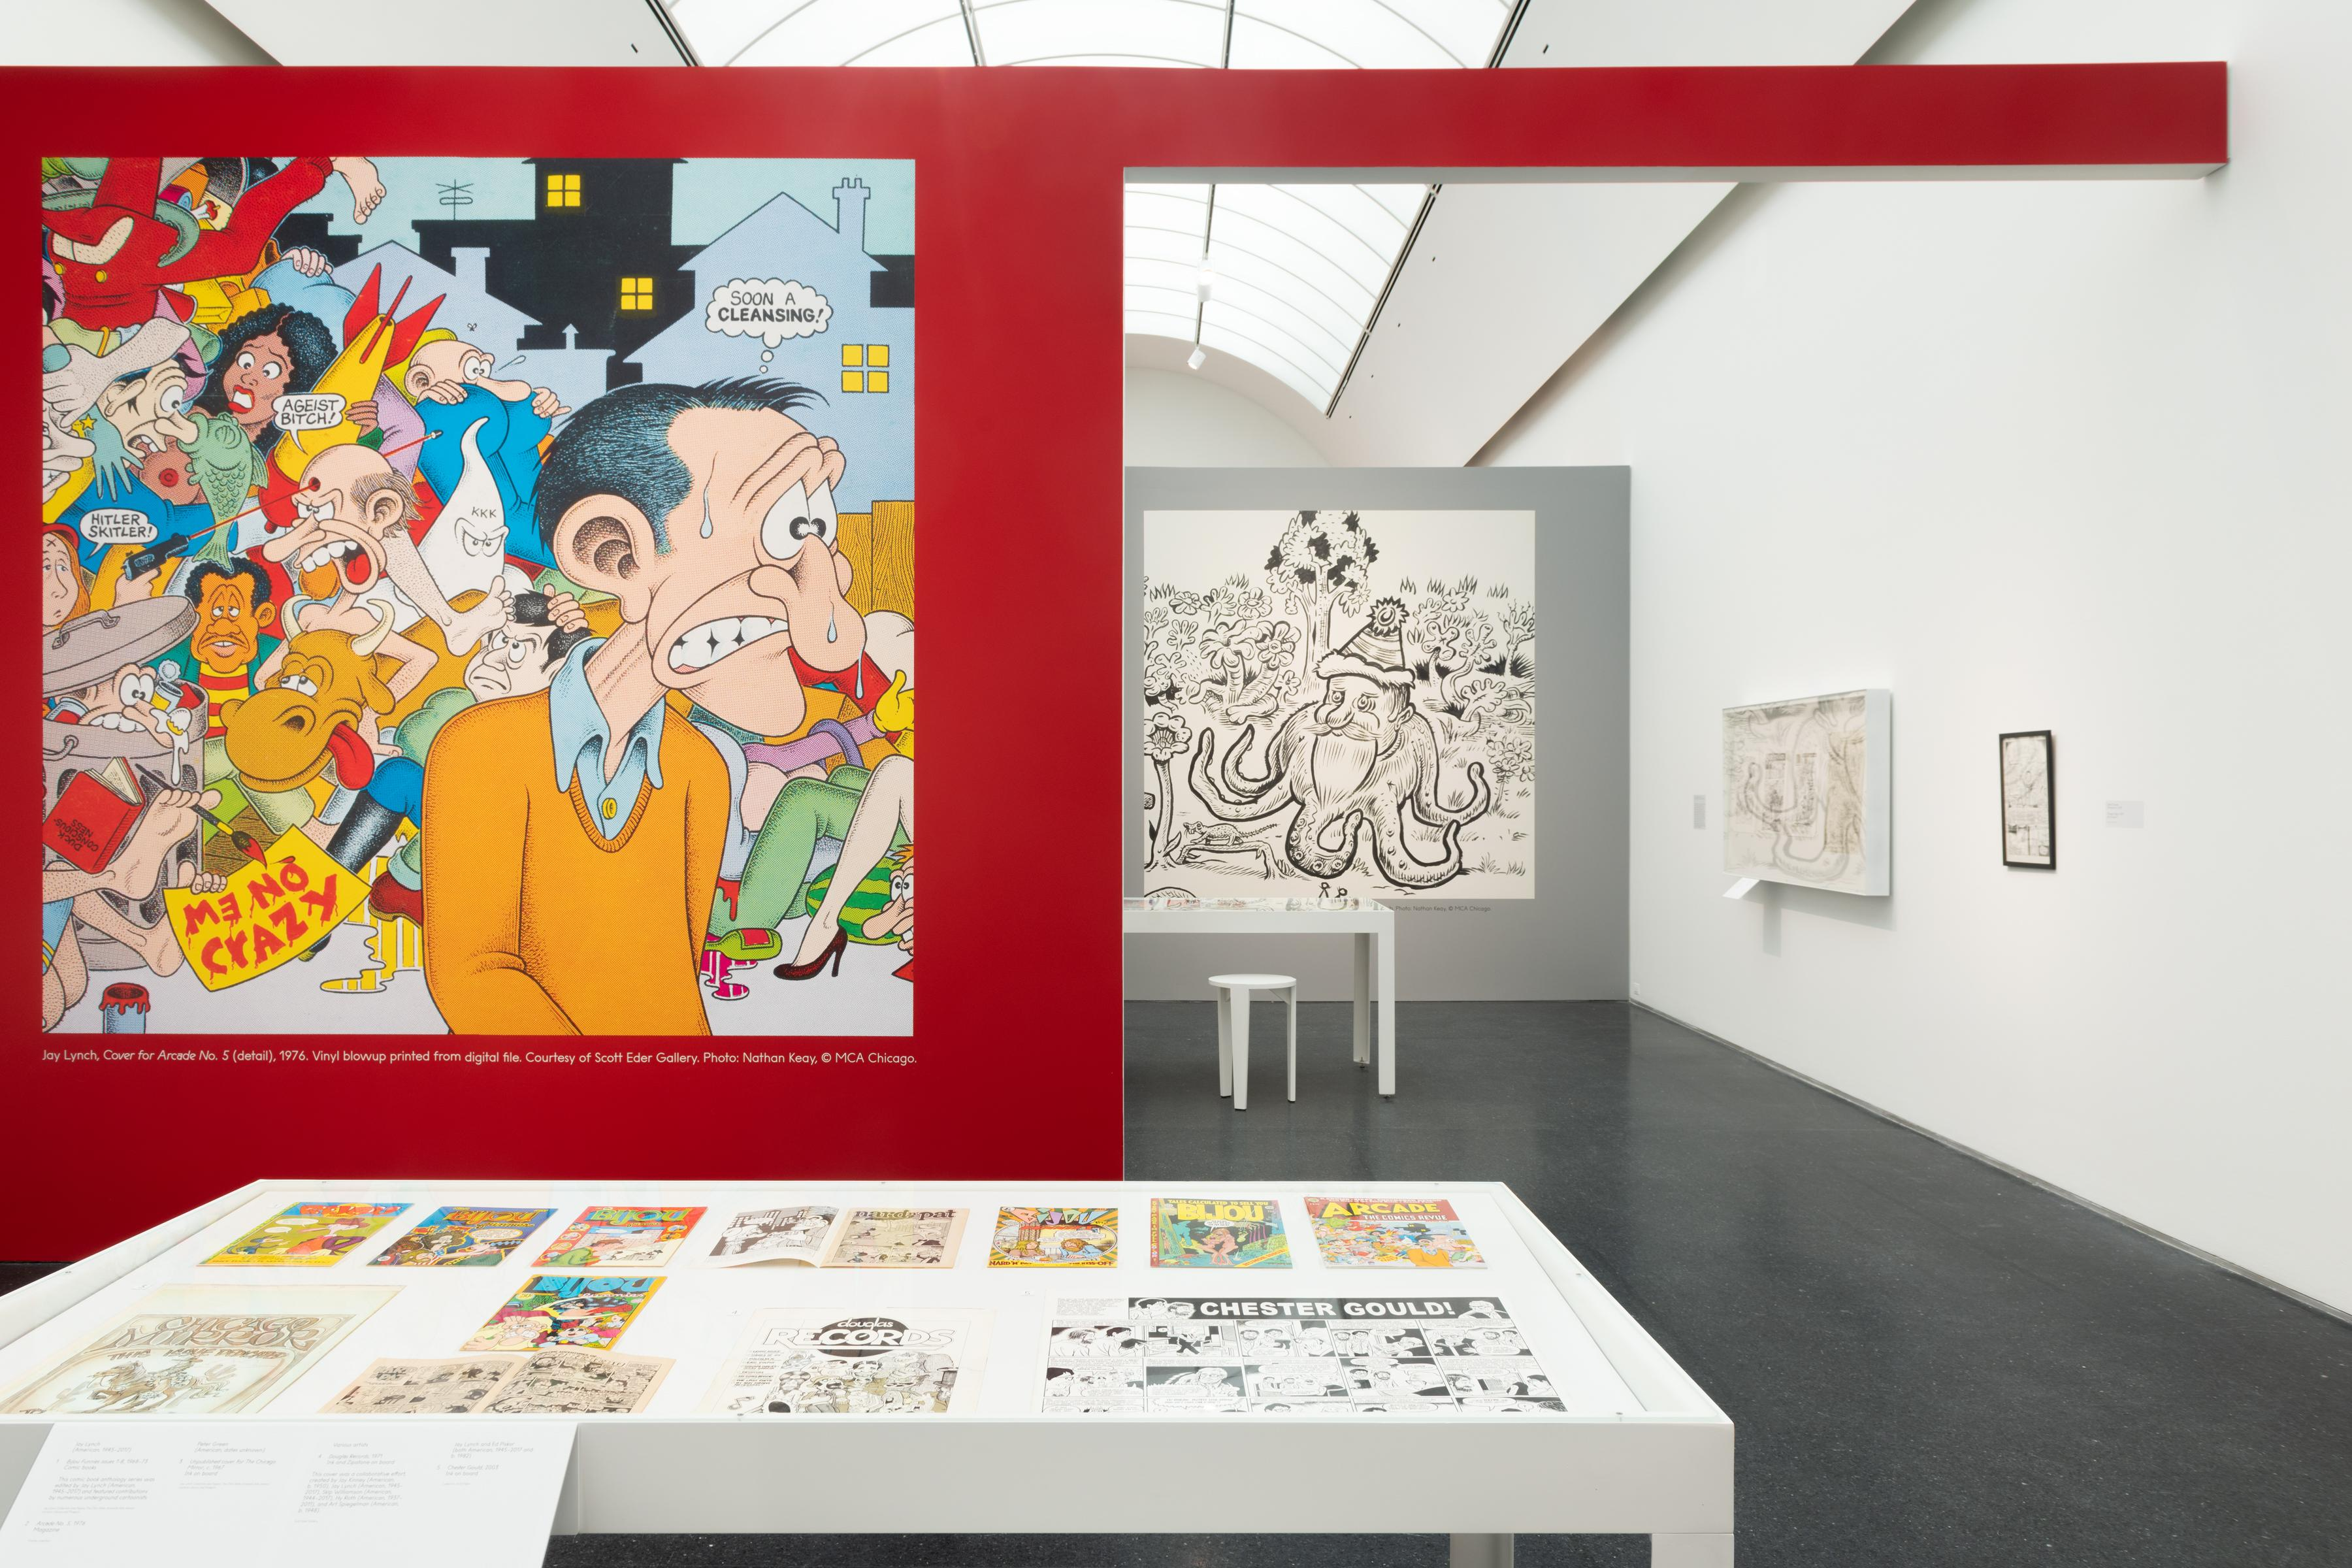 Exhibition interior with a large table and a bold, red wall with comic art depicting a sweating man